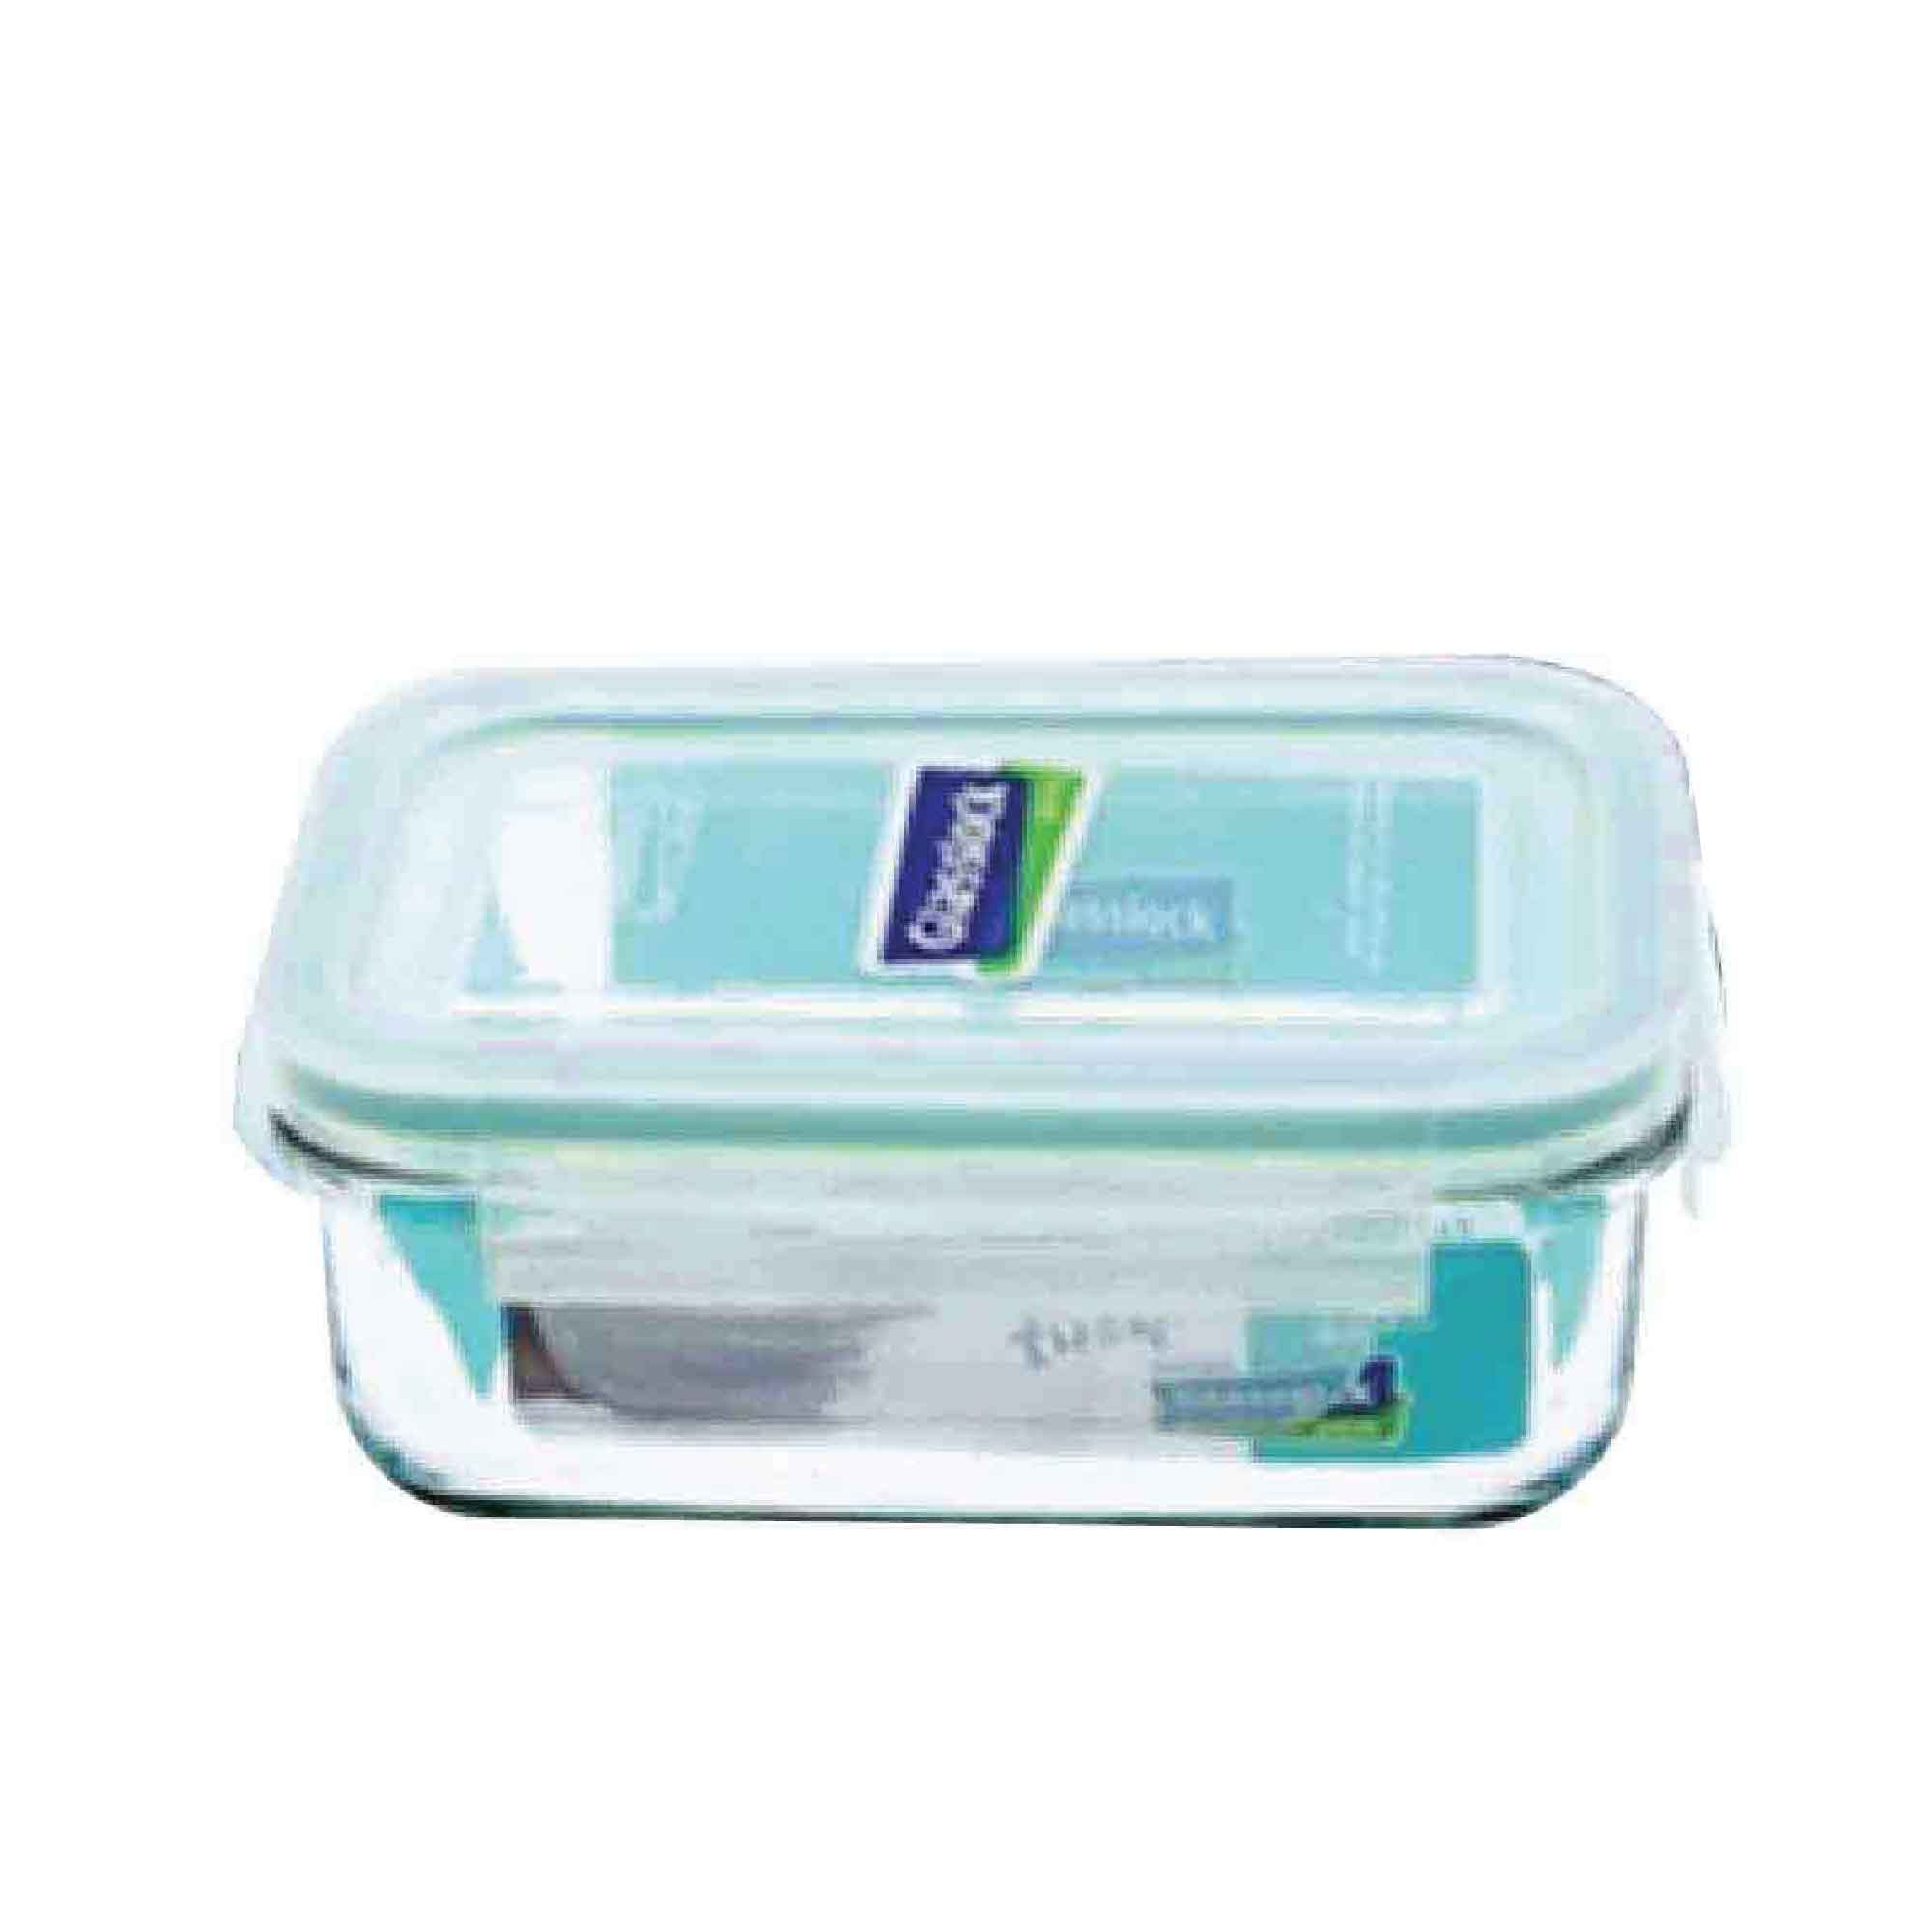 Gllock Tempered Gl Food Containers 638 Made In Korea 400ml